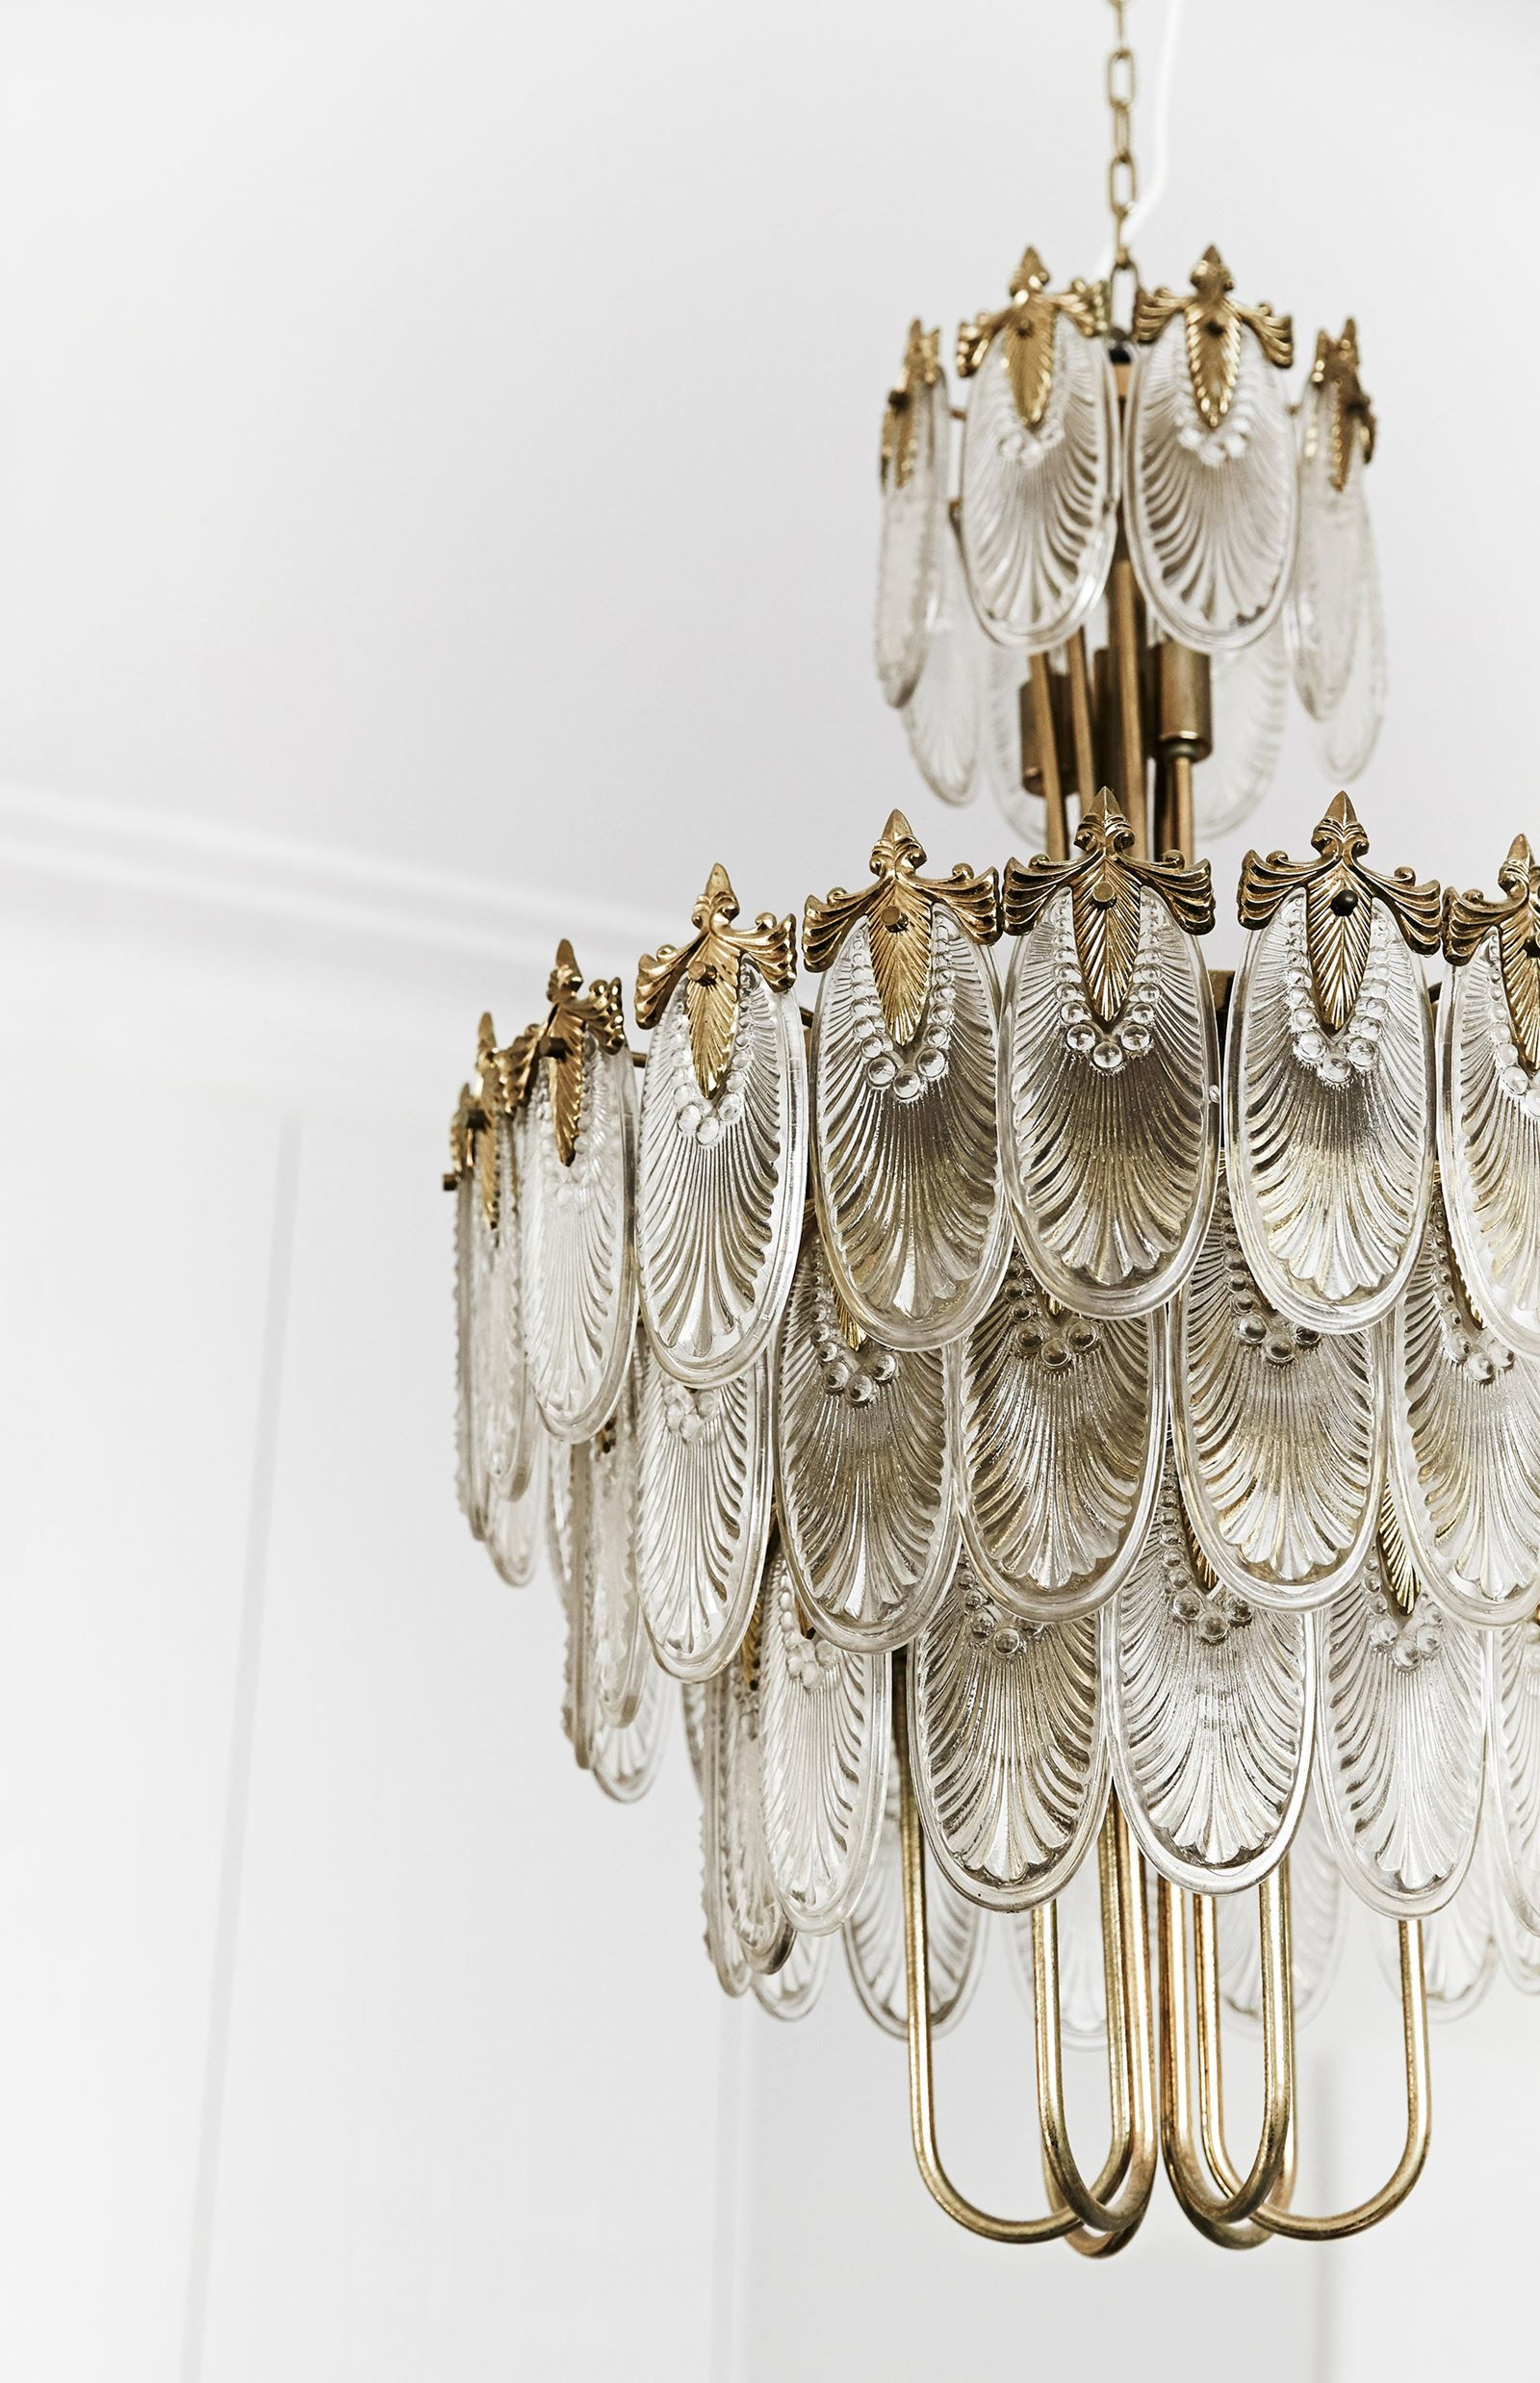 old fashioned brass best patinated of style georgian chandeliers lighting vintage within tier chandelier